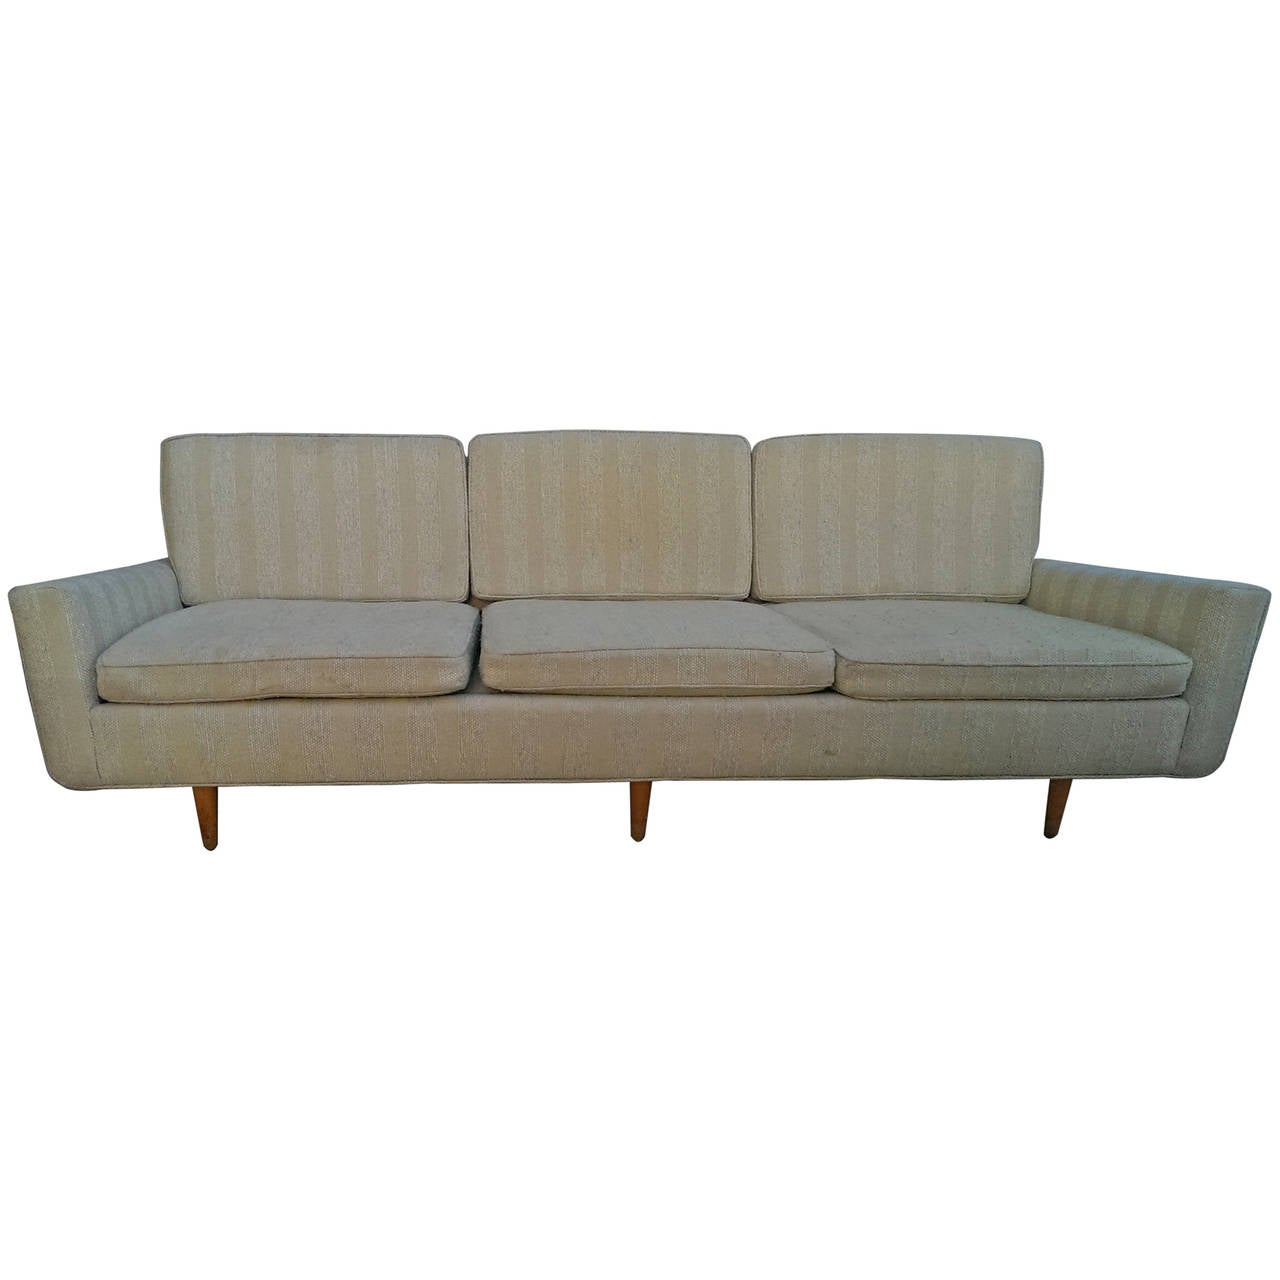 Florence Knoll Sofa By Knoll Associates At 1stdibs